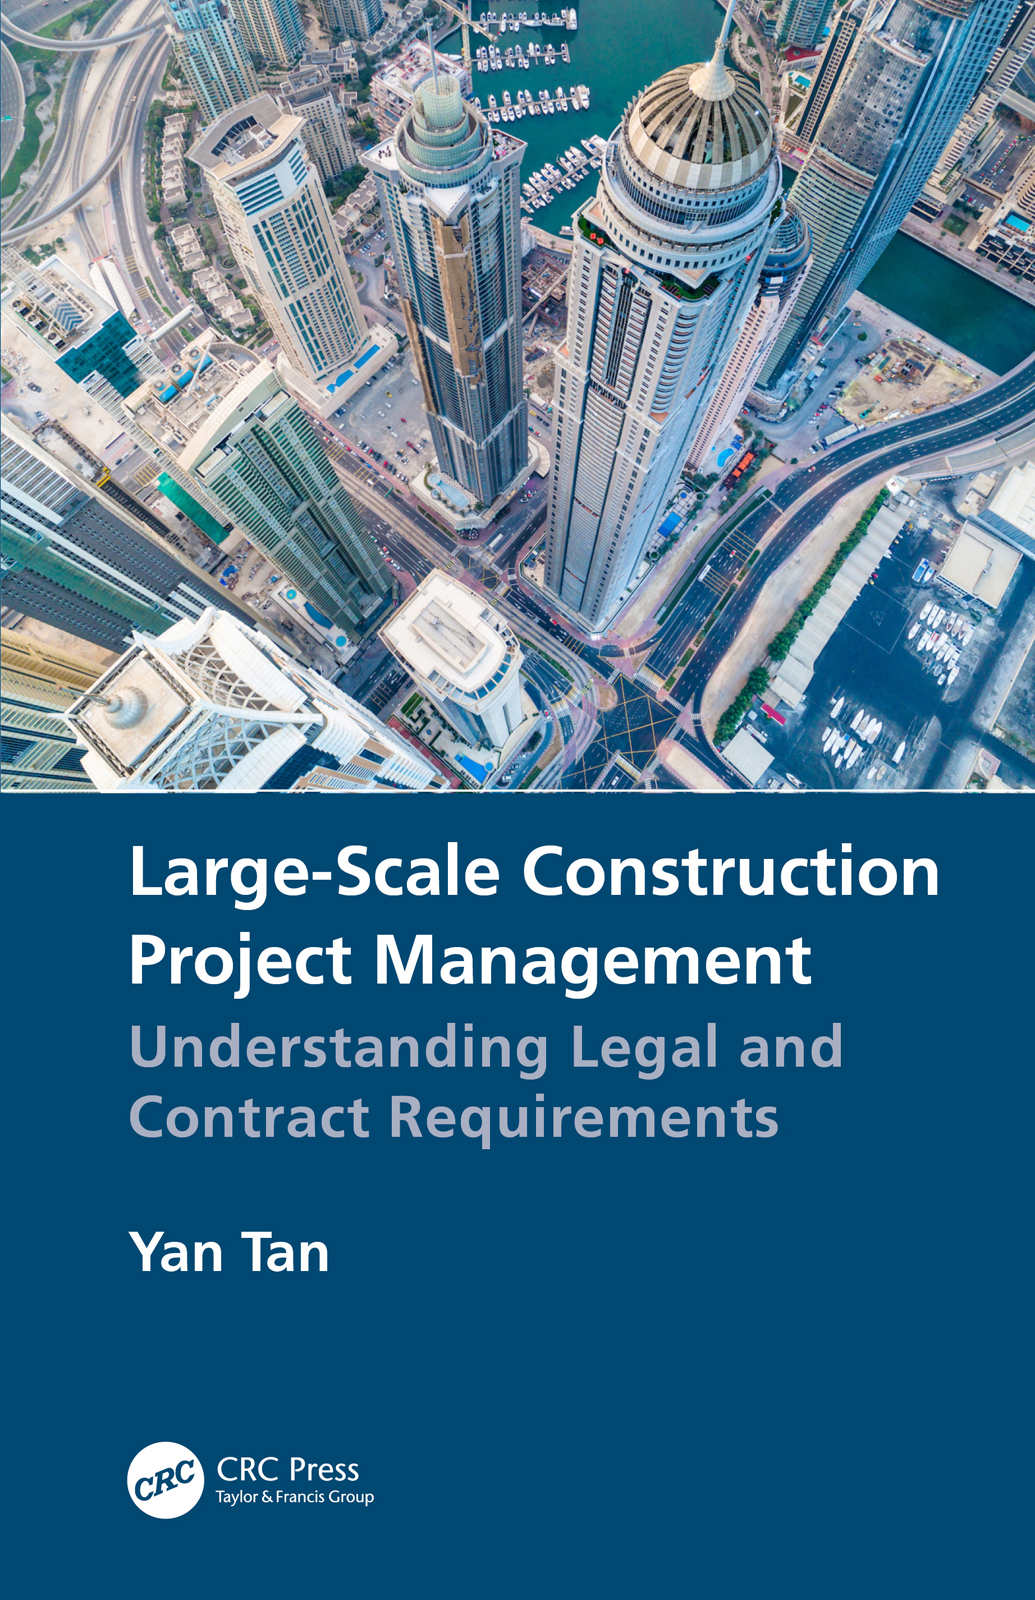 Large-Scale Construction Project Management: Understanding Legal and Contract Requirements book cover